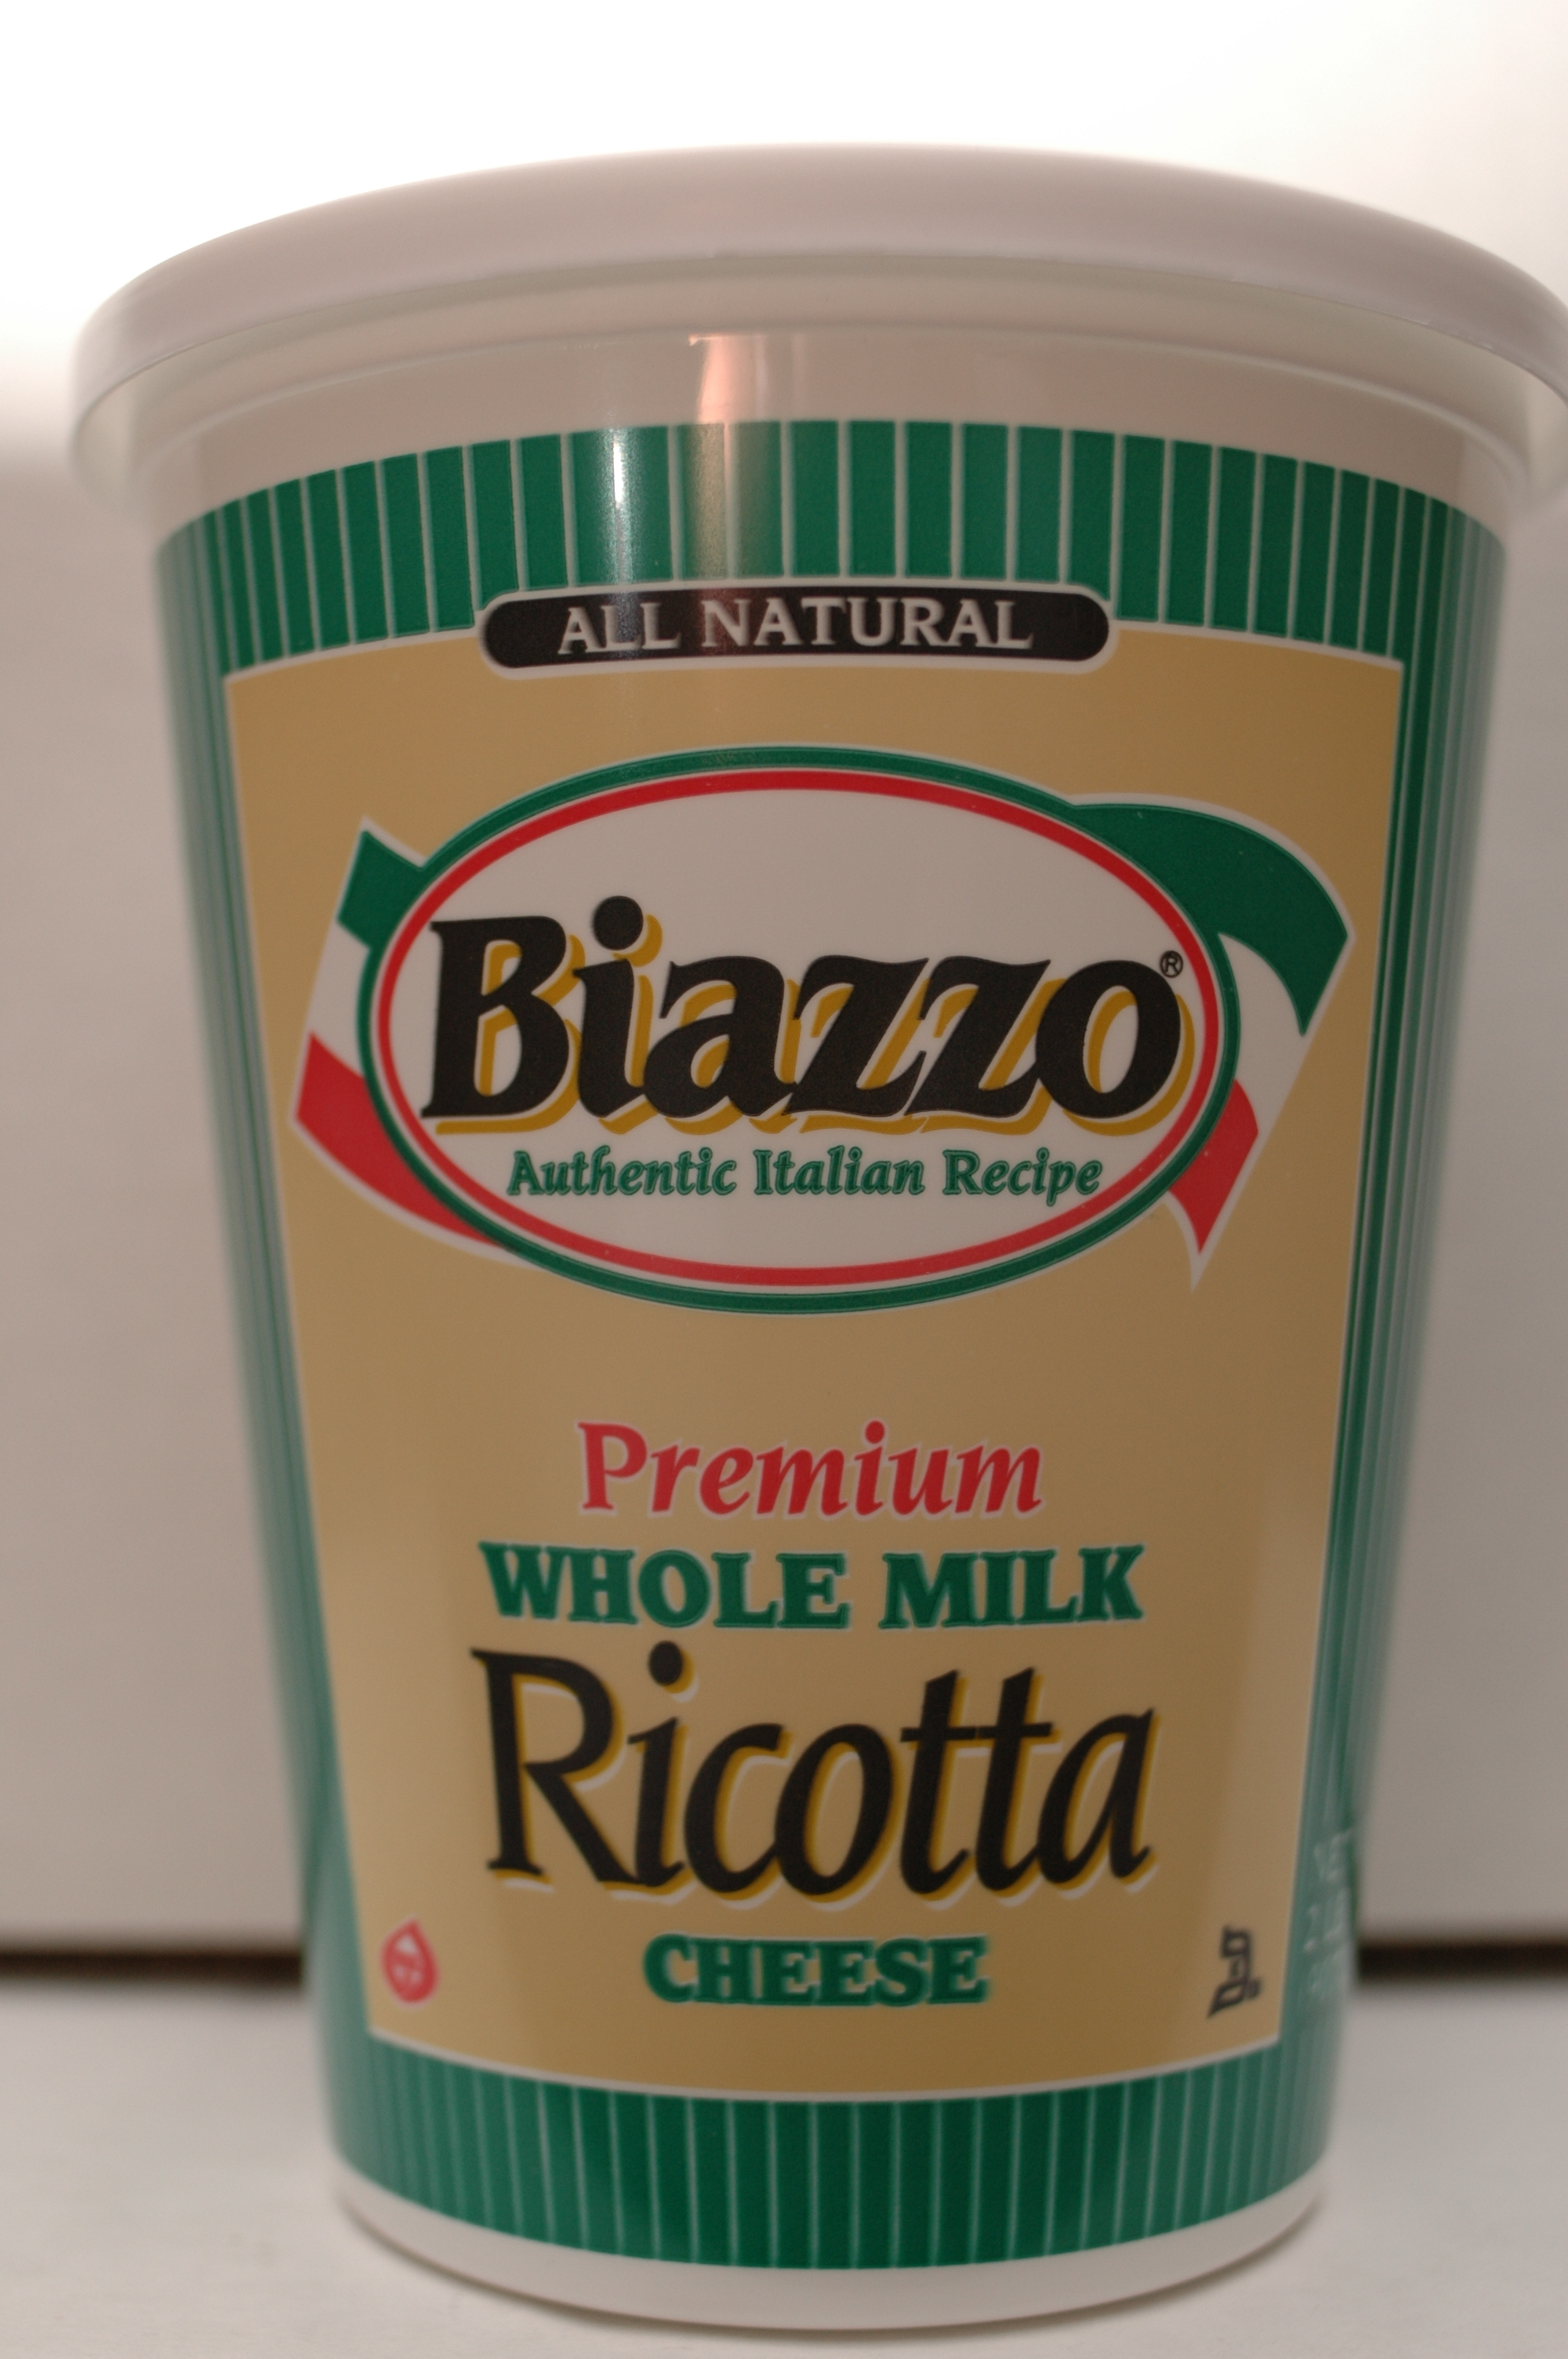 Biazzo  whole milk ricotta